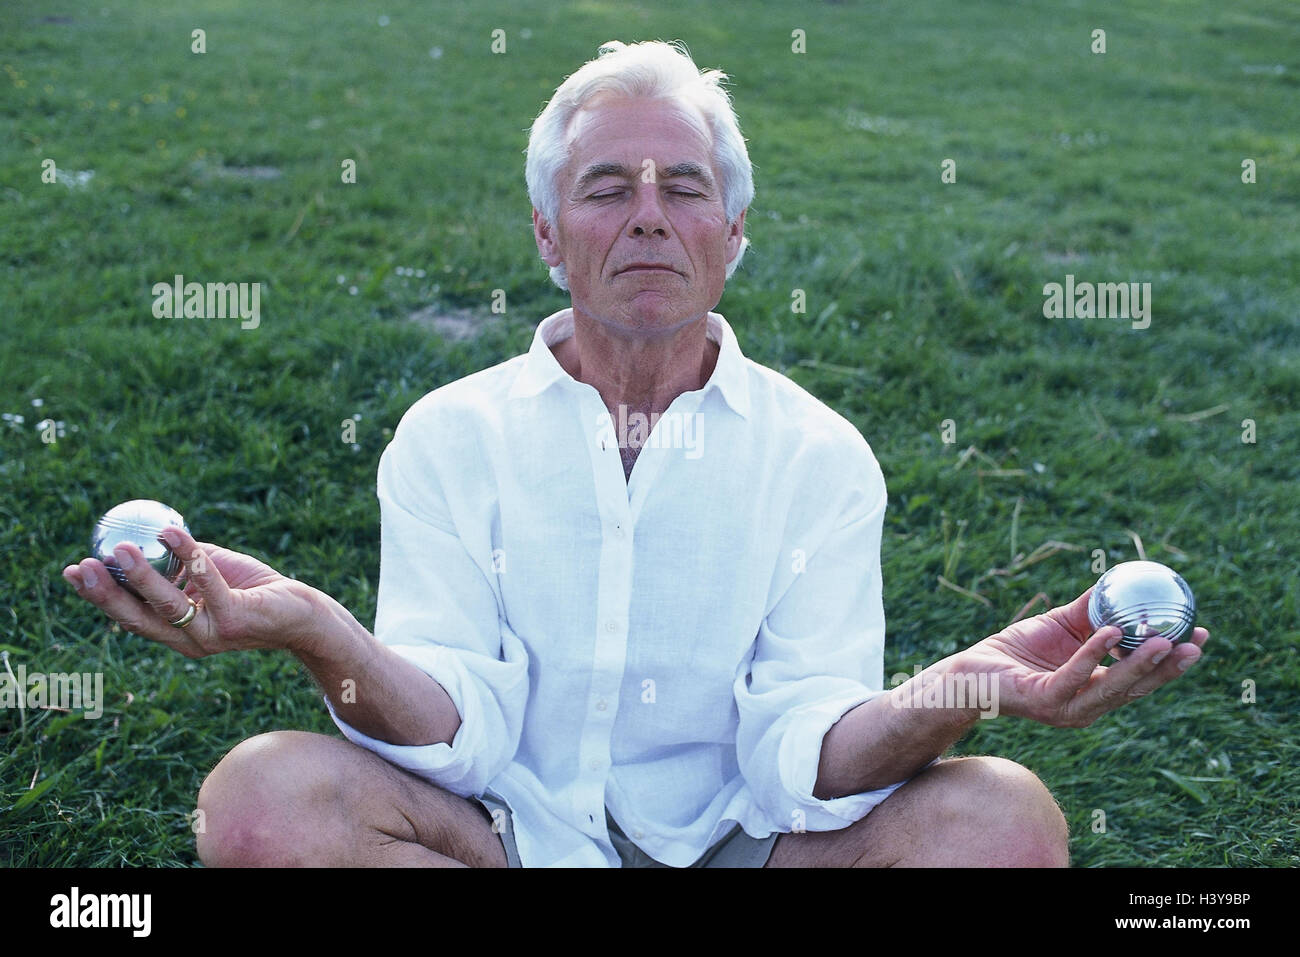 Meadow, senior, Qigong sphere, meditation, outside, man, old, pensioner, hobby, leisure time, Qigong, Chi Gong, - Stock Image